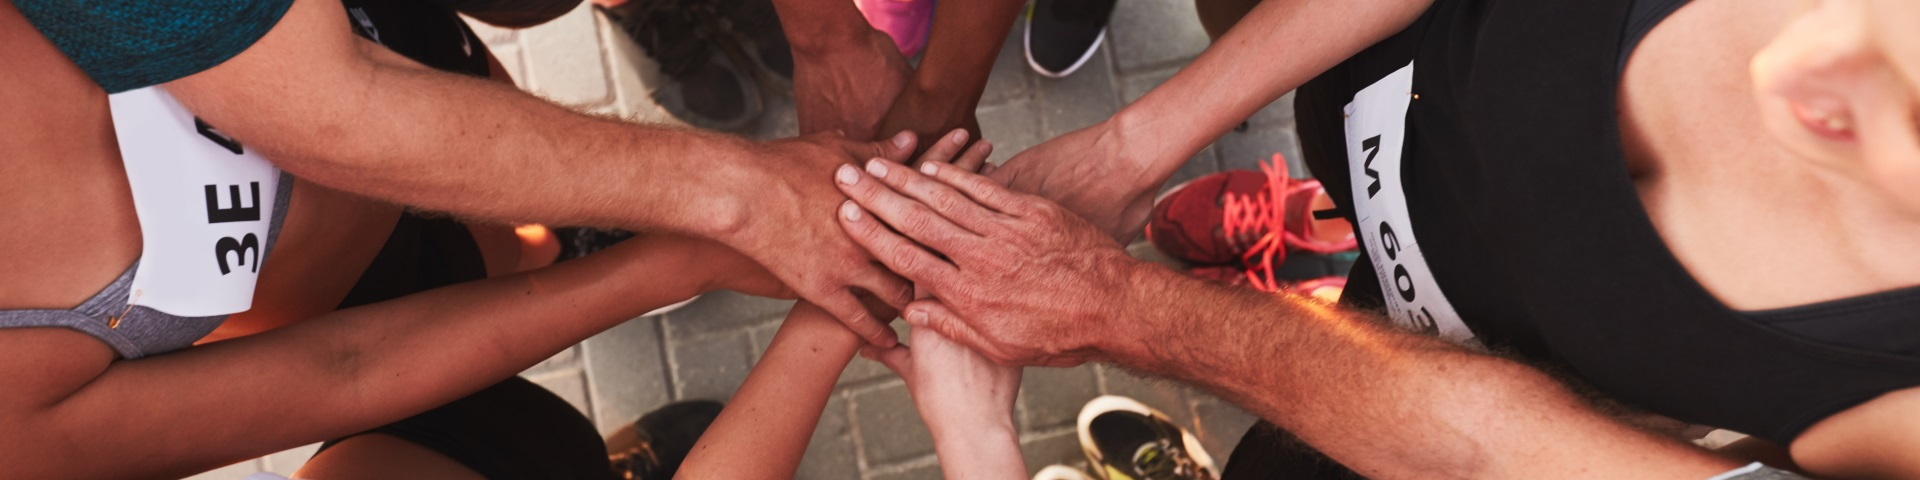 Group huddle of hands